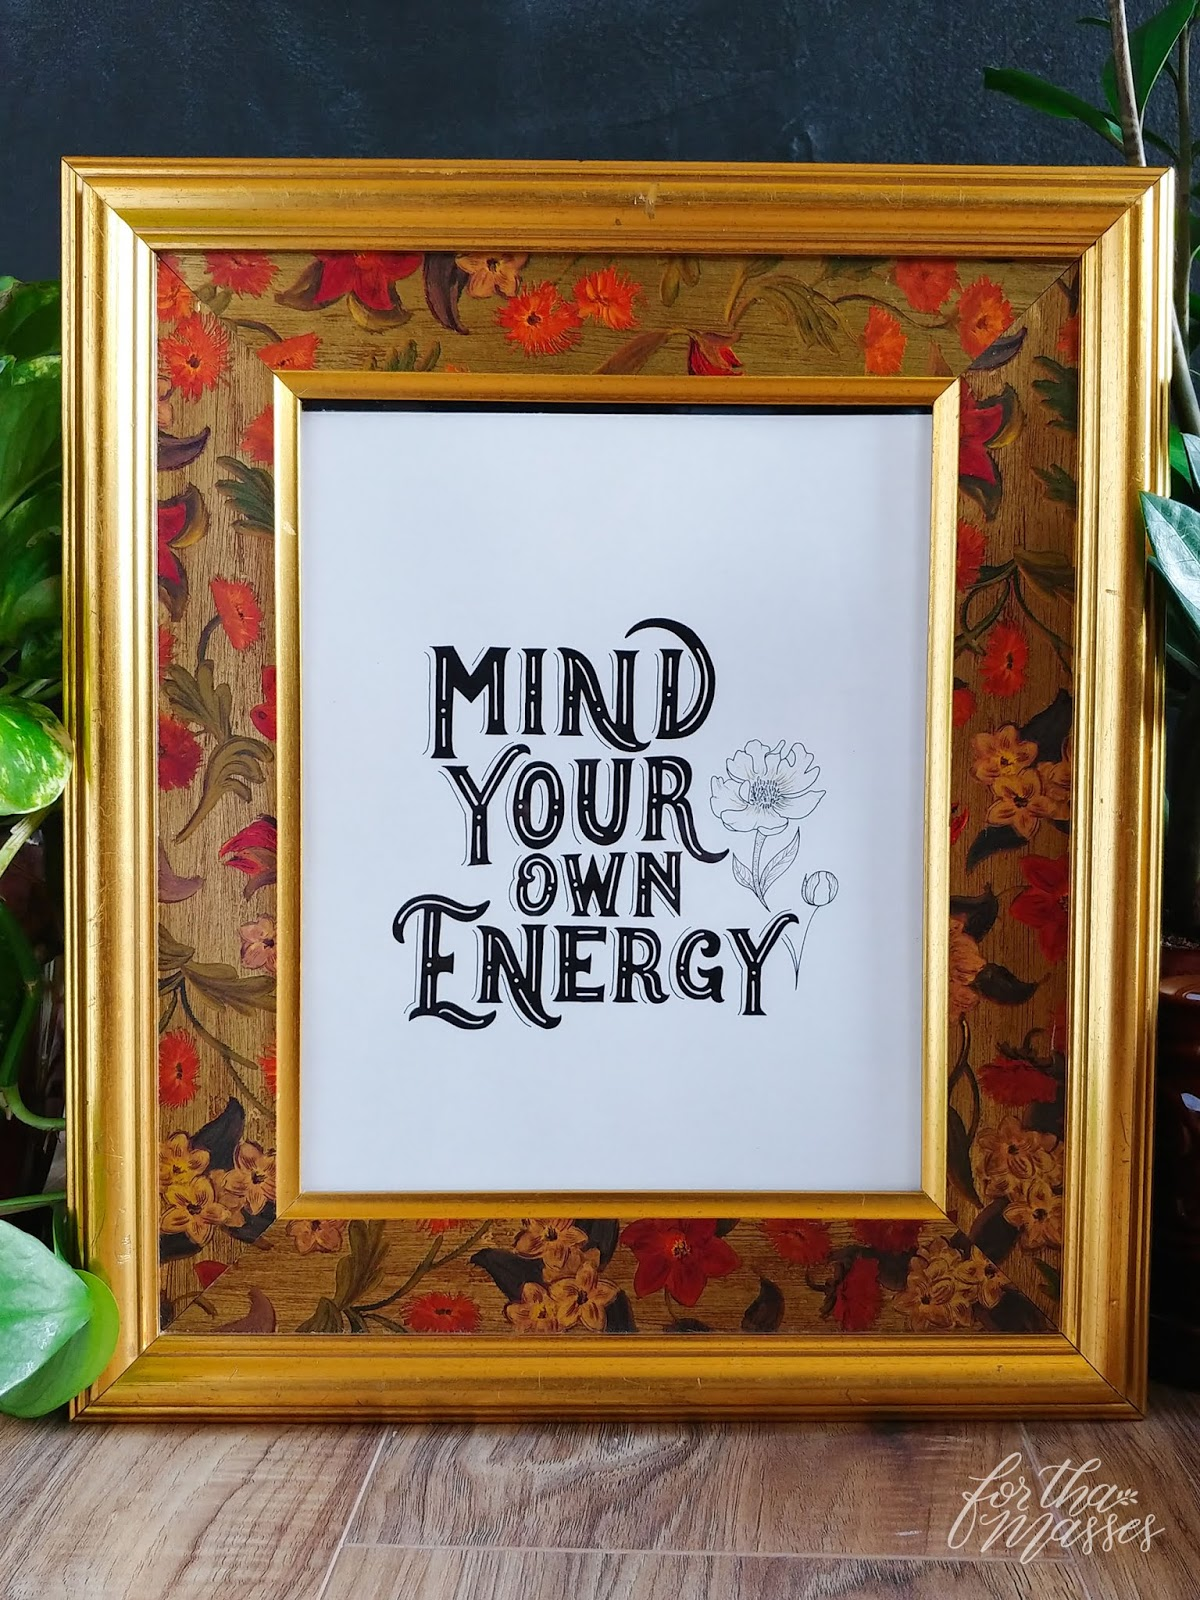 for tha masses mind your own energy